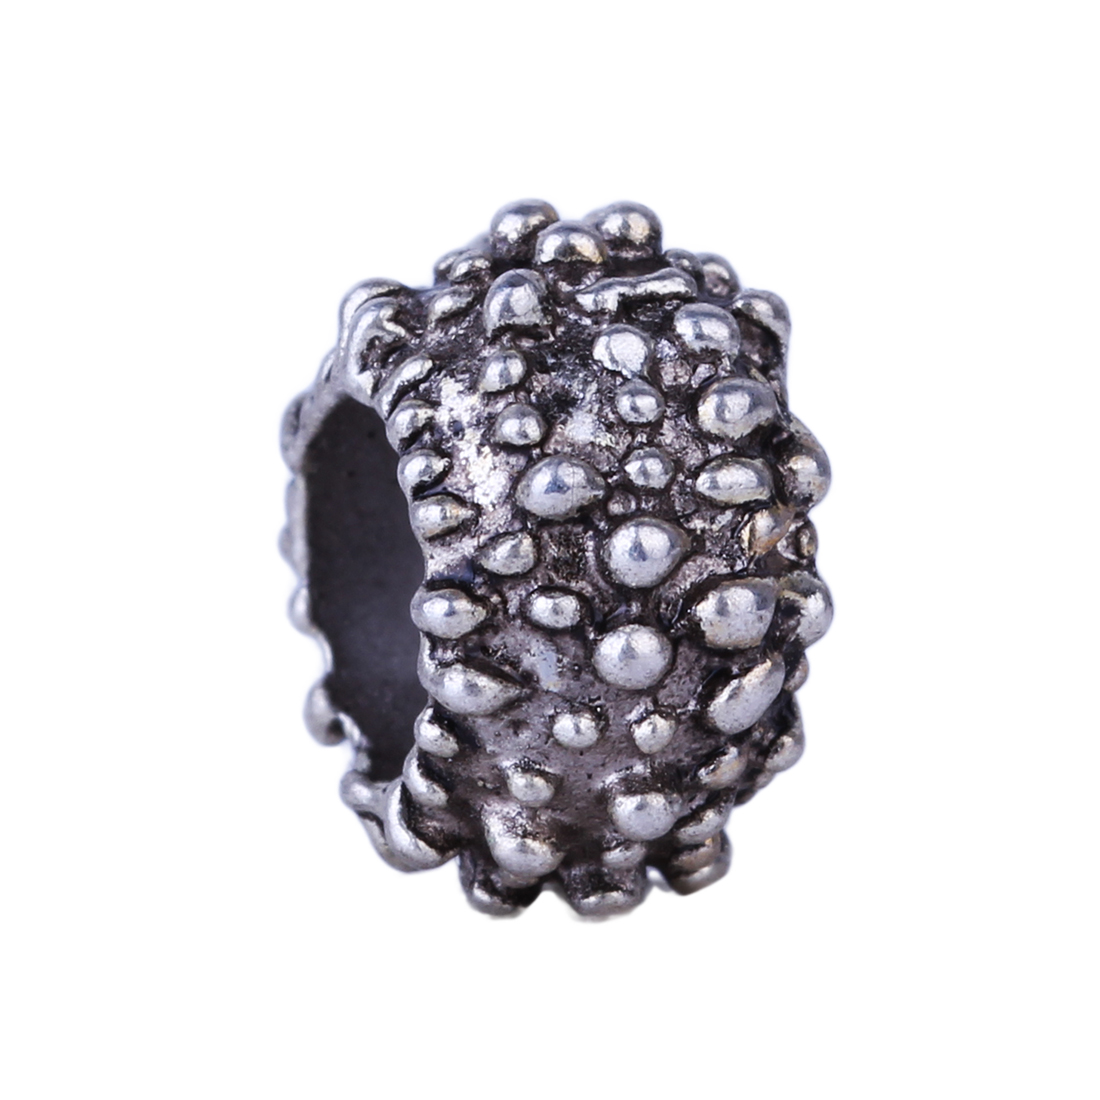 New Wholesale 1pc Fashion Style Bead Alloy Bead Charm European Silver Small Dots Bead Fit